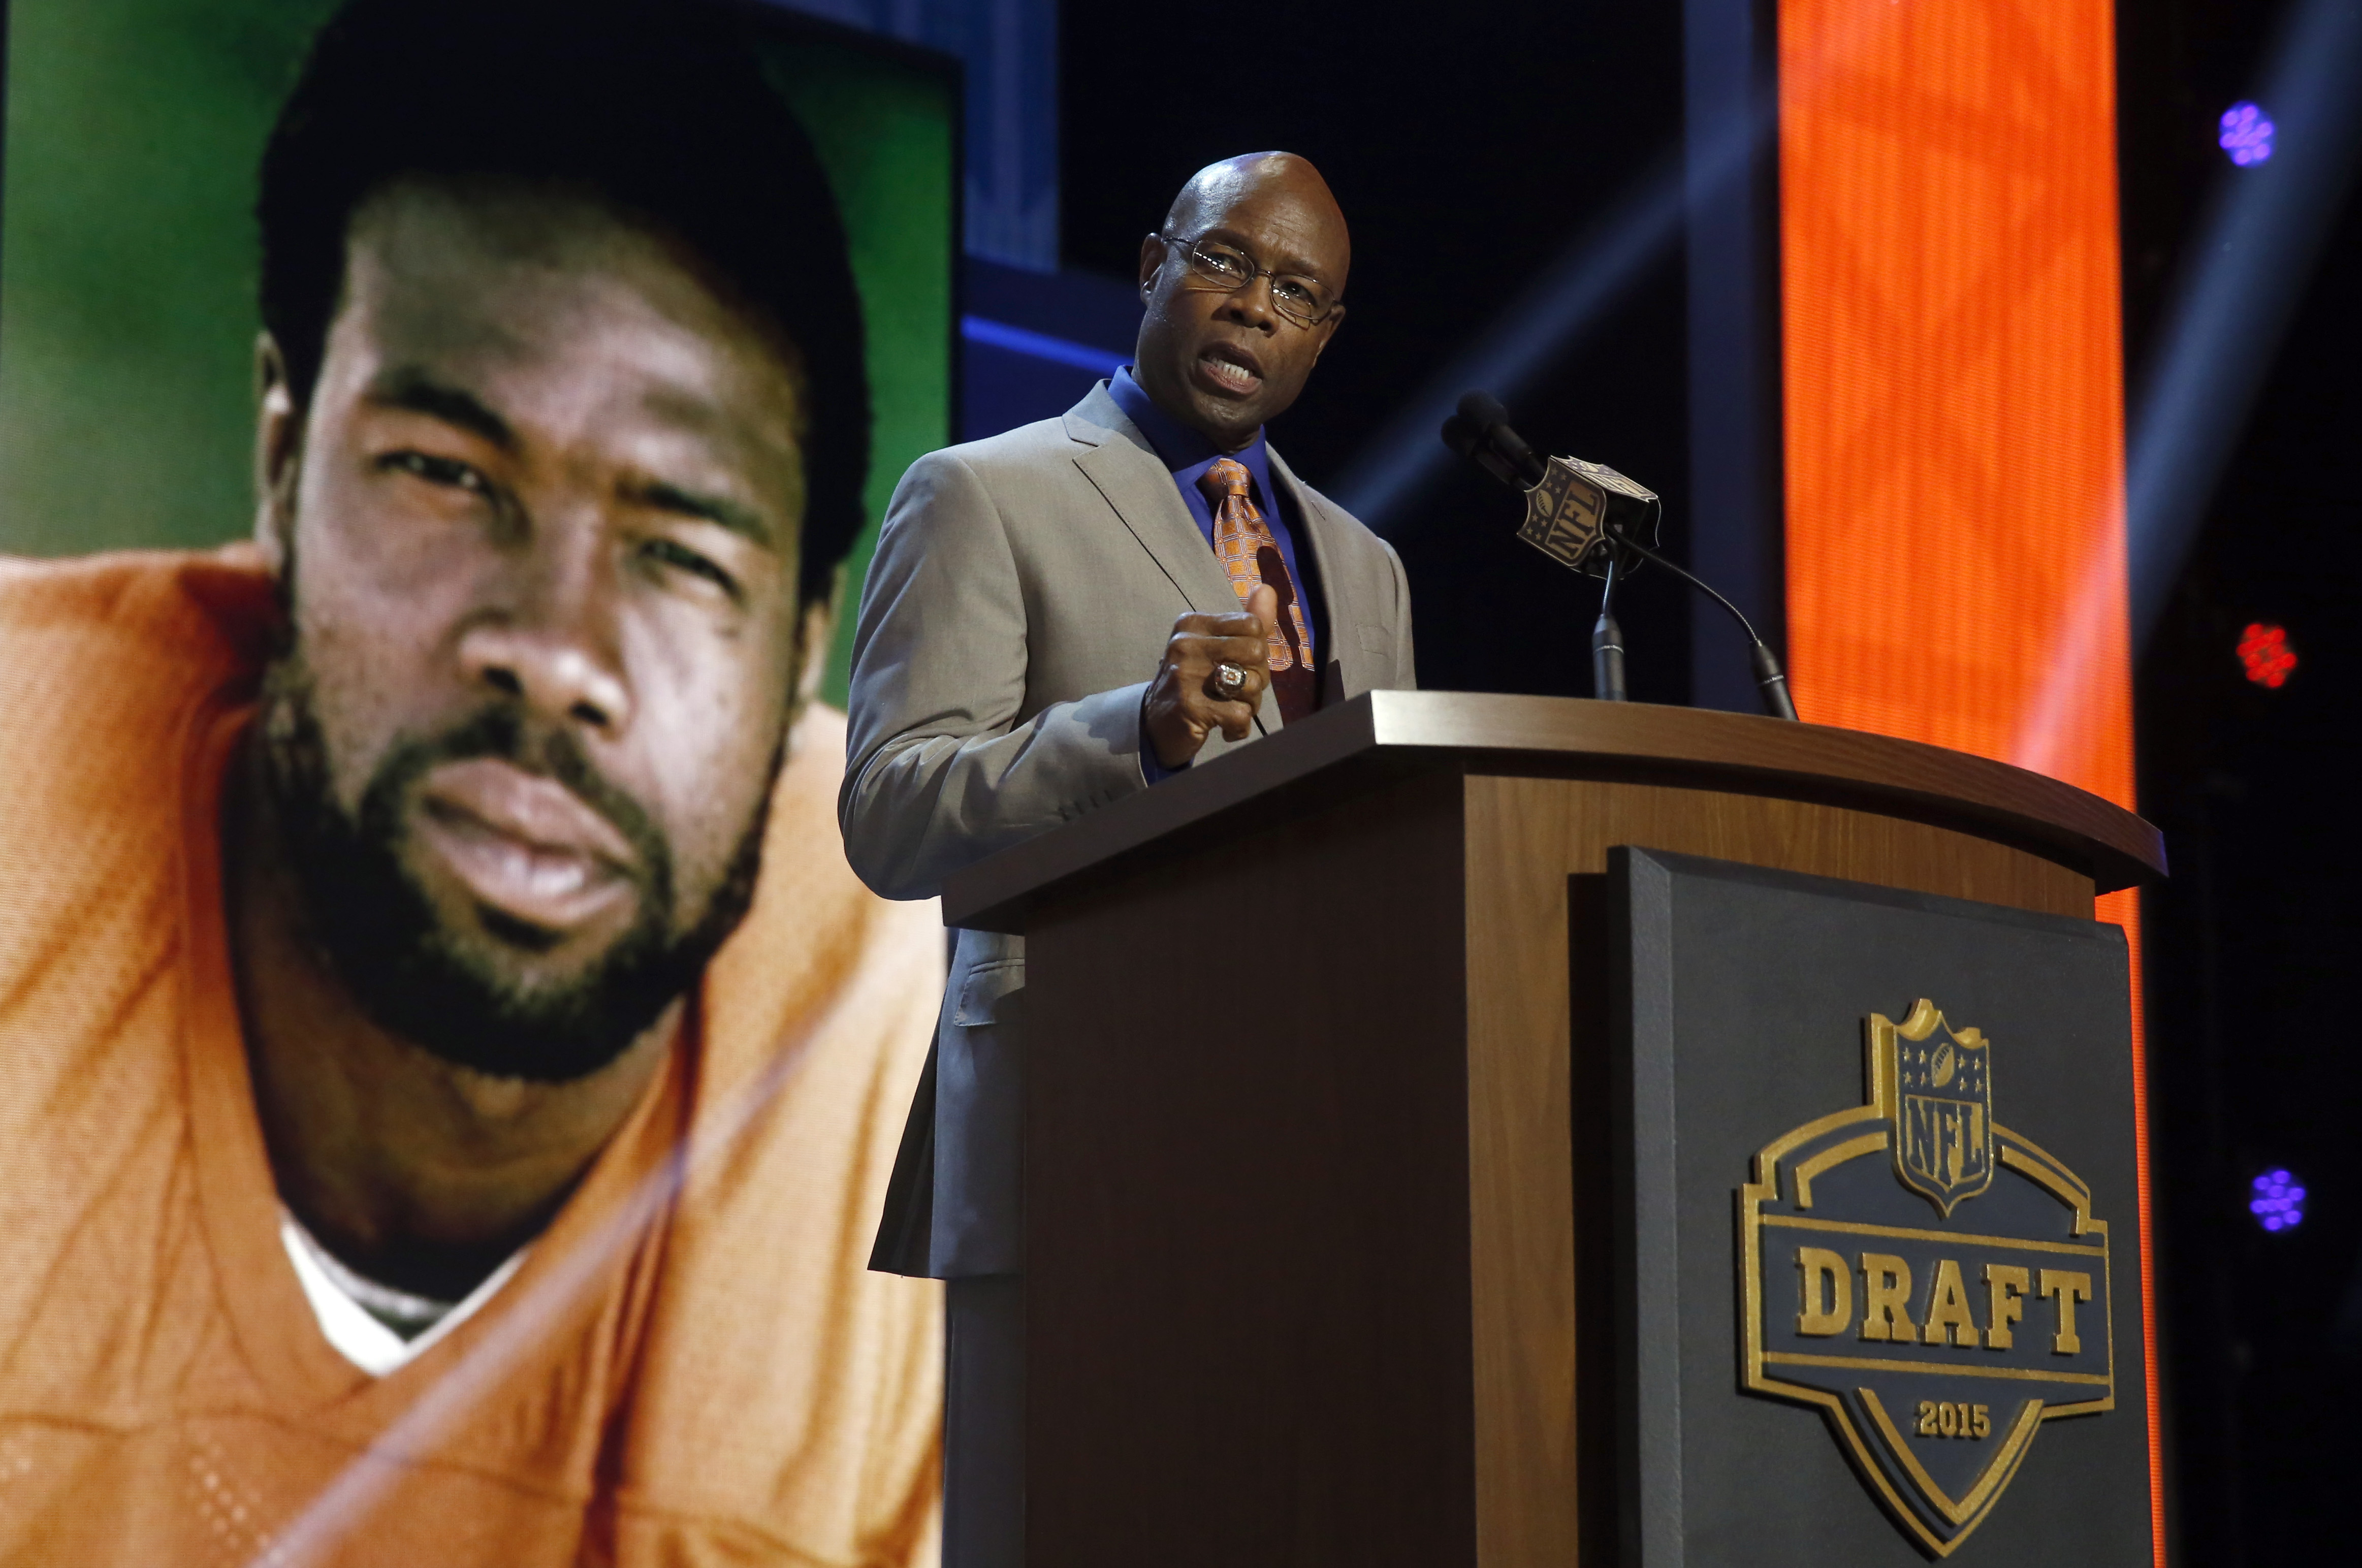 Former Denver Broncos player Rick Upchurch announces that the Denver Broncos selects Colorado State offensive lineman Ty Sambrailo as the 59th pick in the second round of the 2015 NFL Football Draft,  Friday, May 1, 2015, in Chicago. (AP Photo/Charles Rex